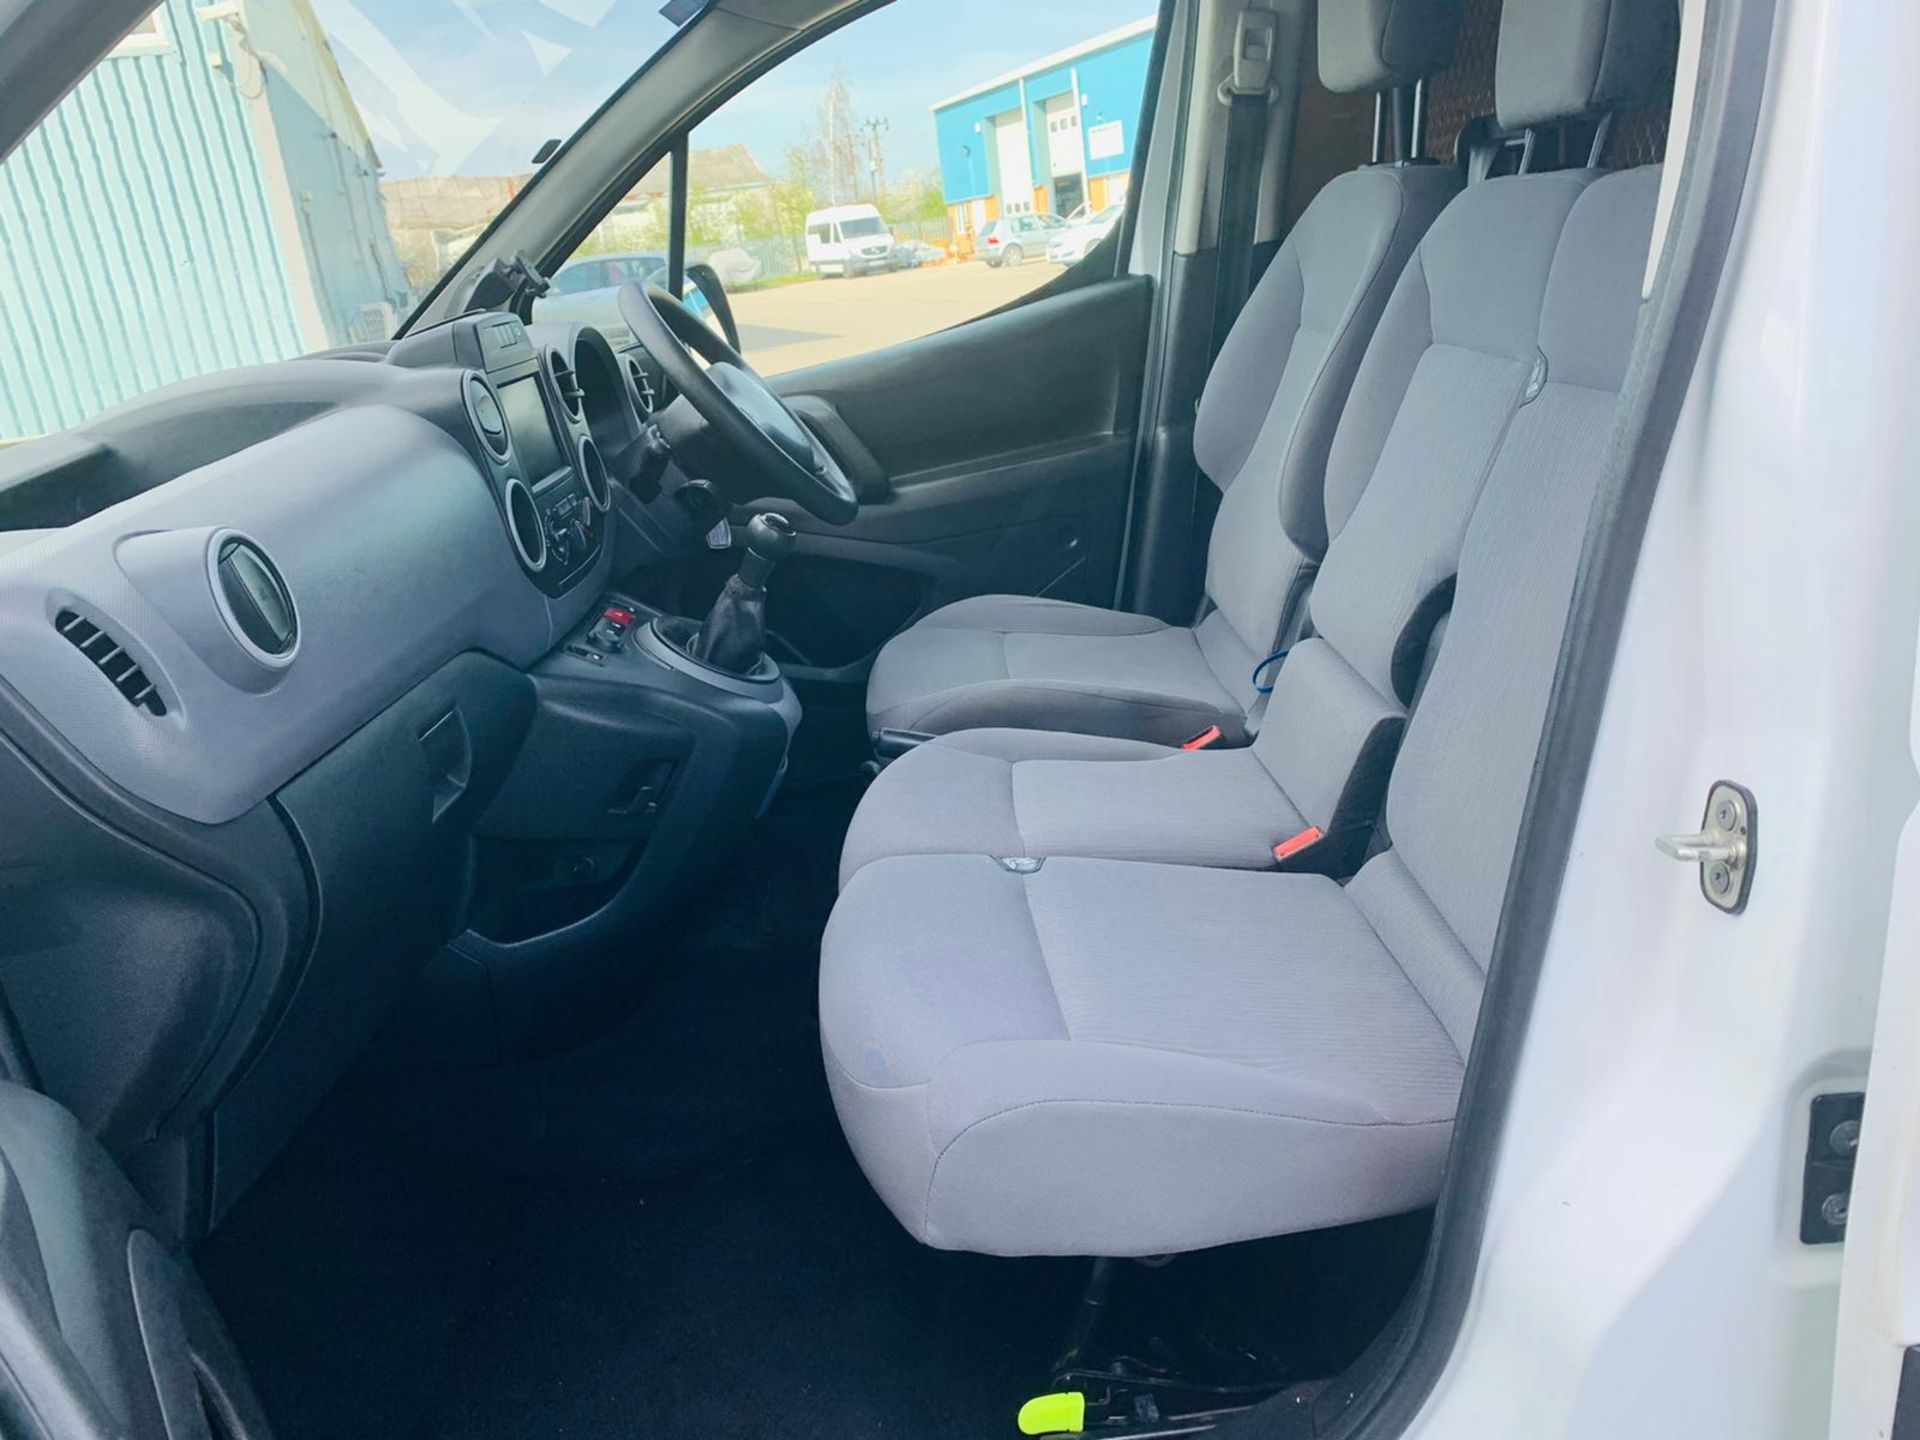 Peugeot Partner 1.6 HDI Professional 2017 Model - 1 Owner - Service Printout - Air Con - Image 13 of 23